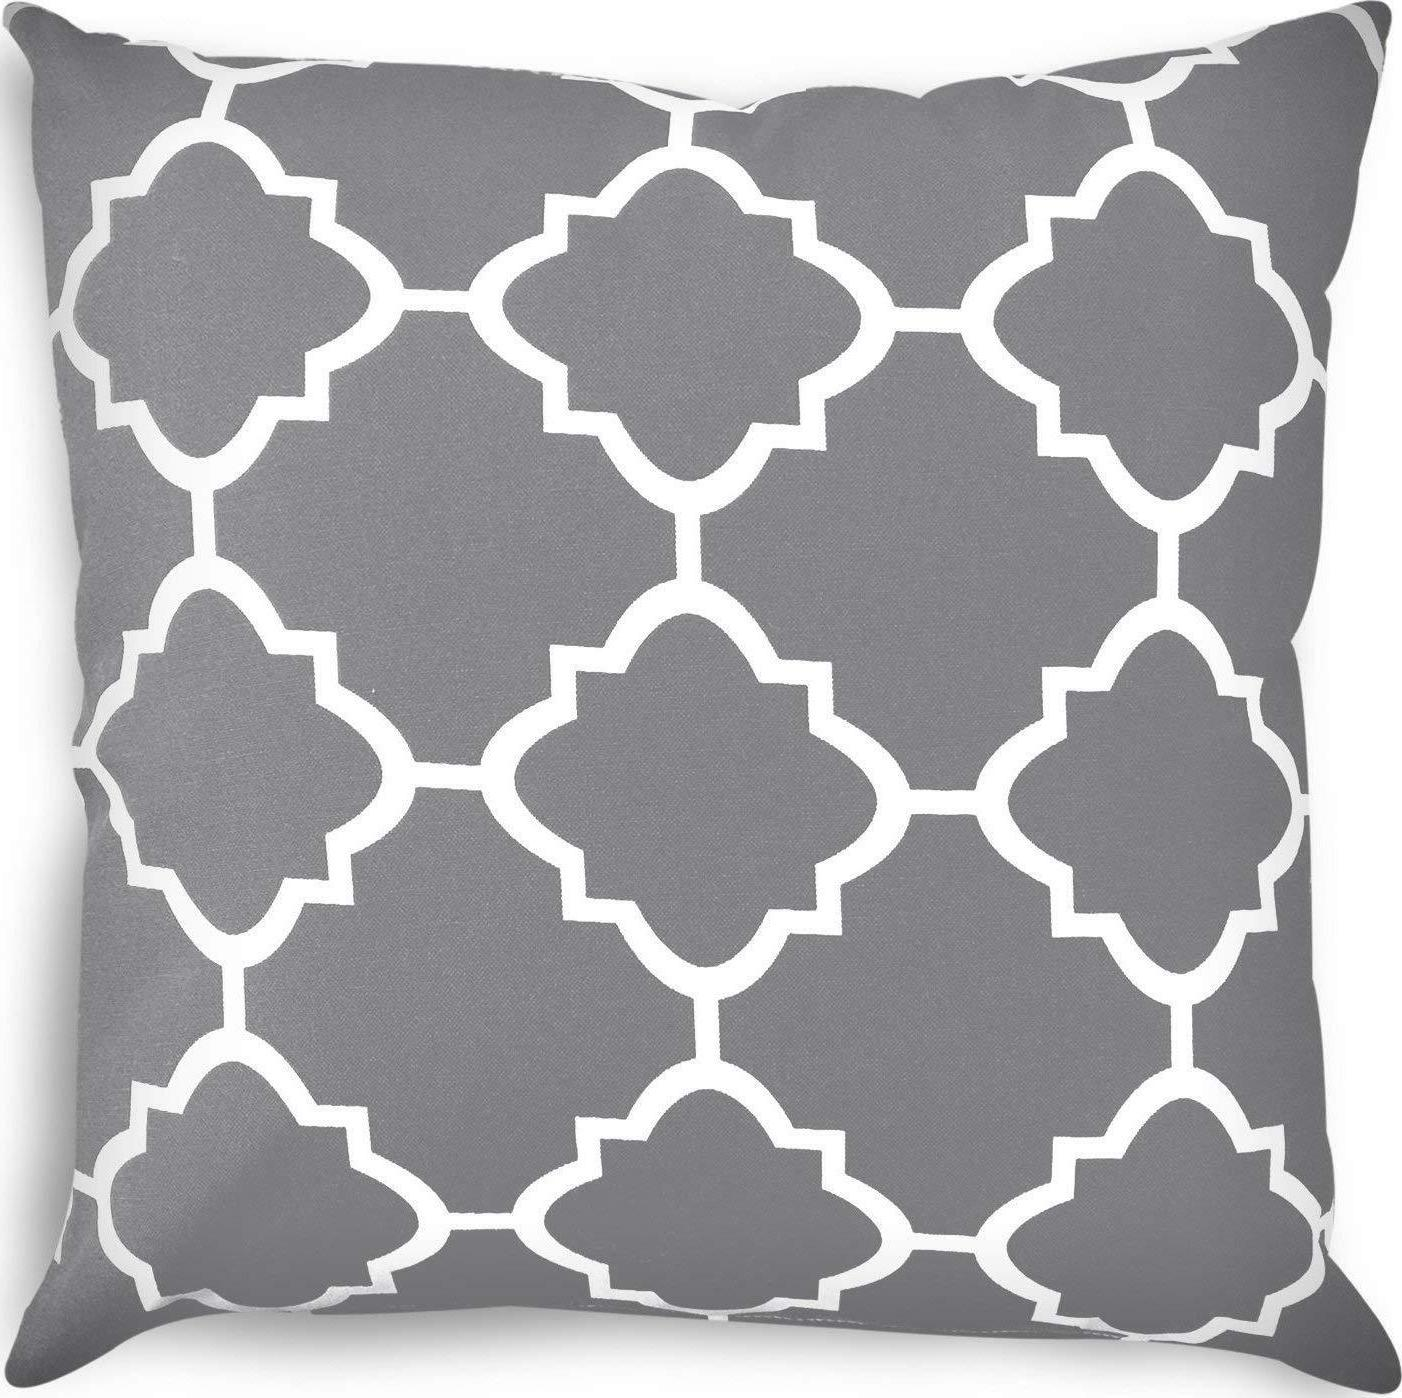 Utopia Bedding Decorative Square 18 x 18 Inch Throw Pillow -